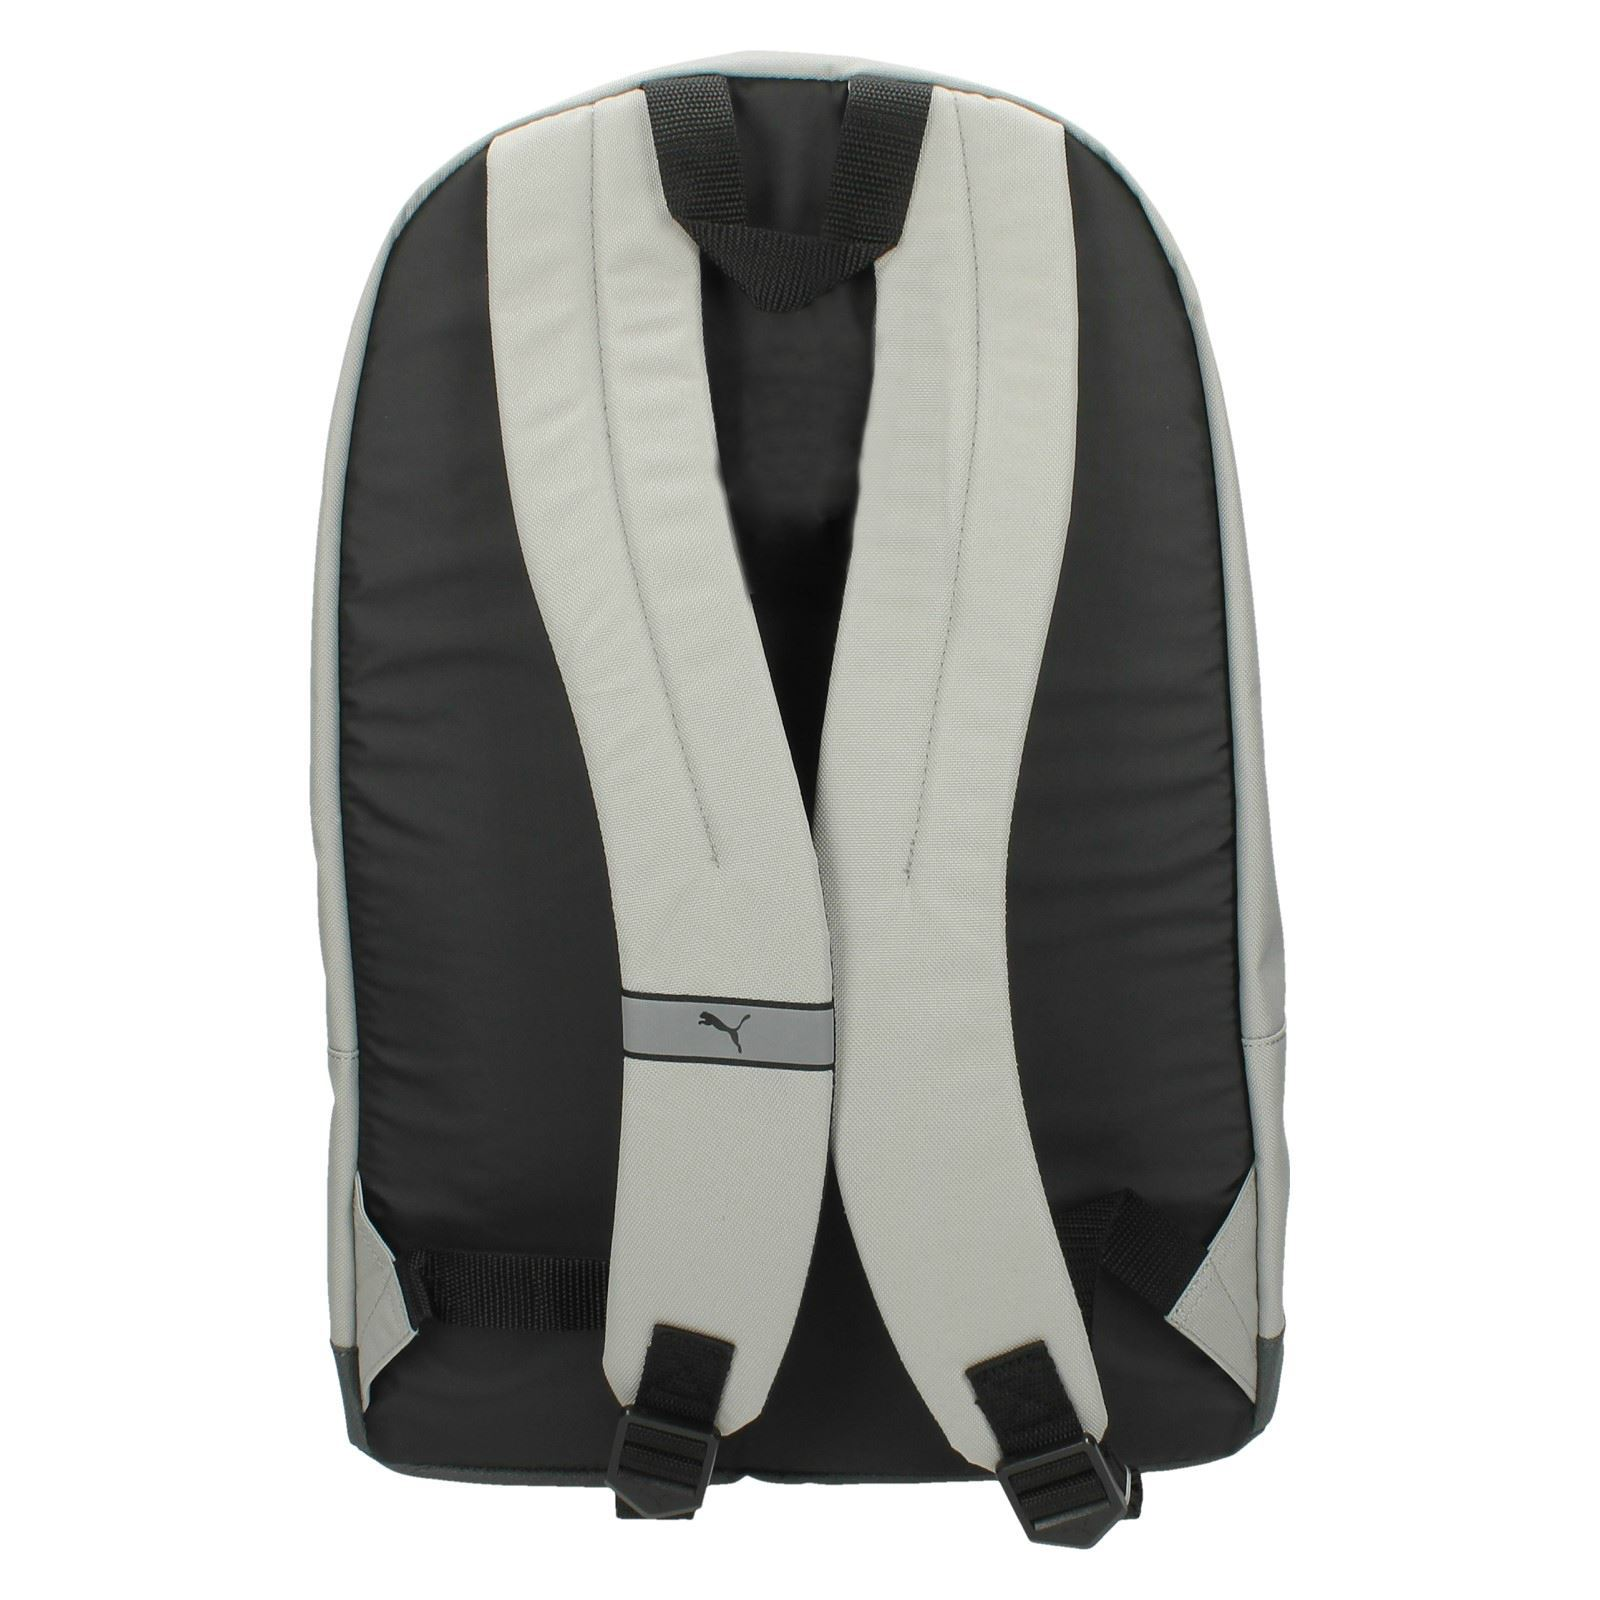 86180be9a870 Puma Pioneer Unisex Polyester Backpack Bag 073391